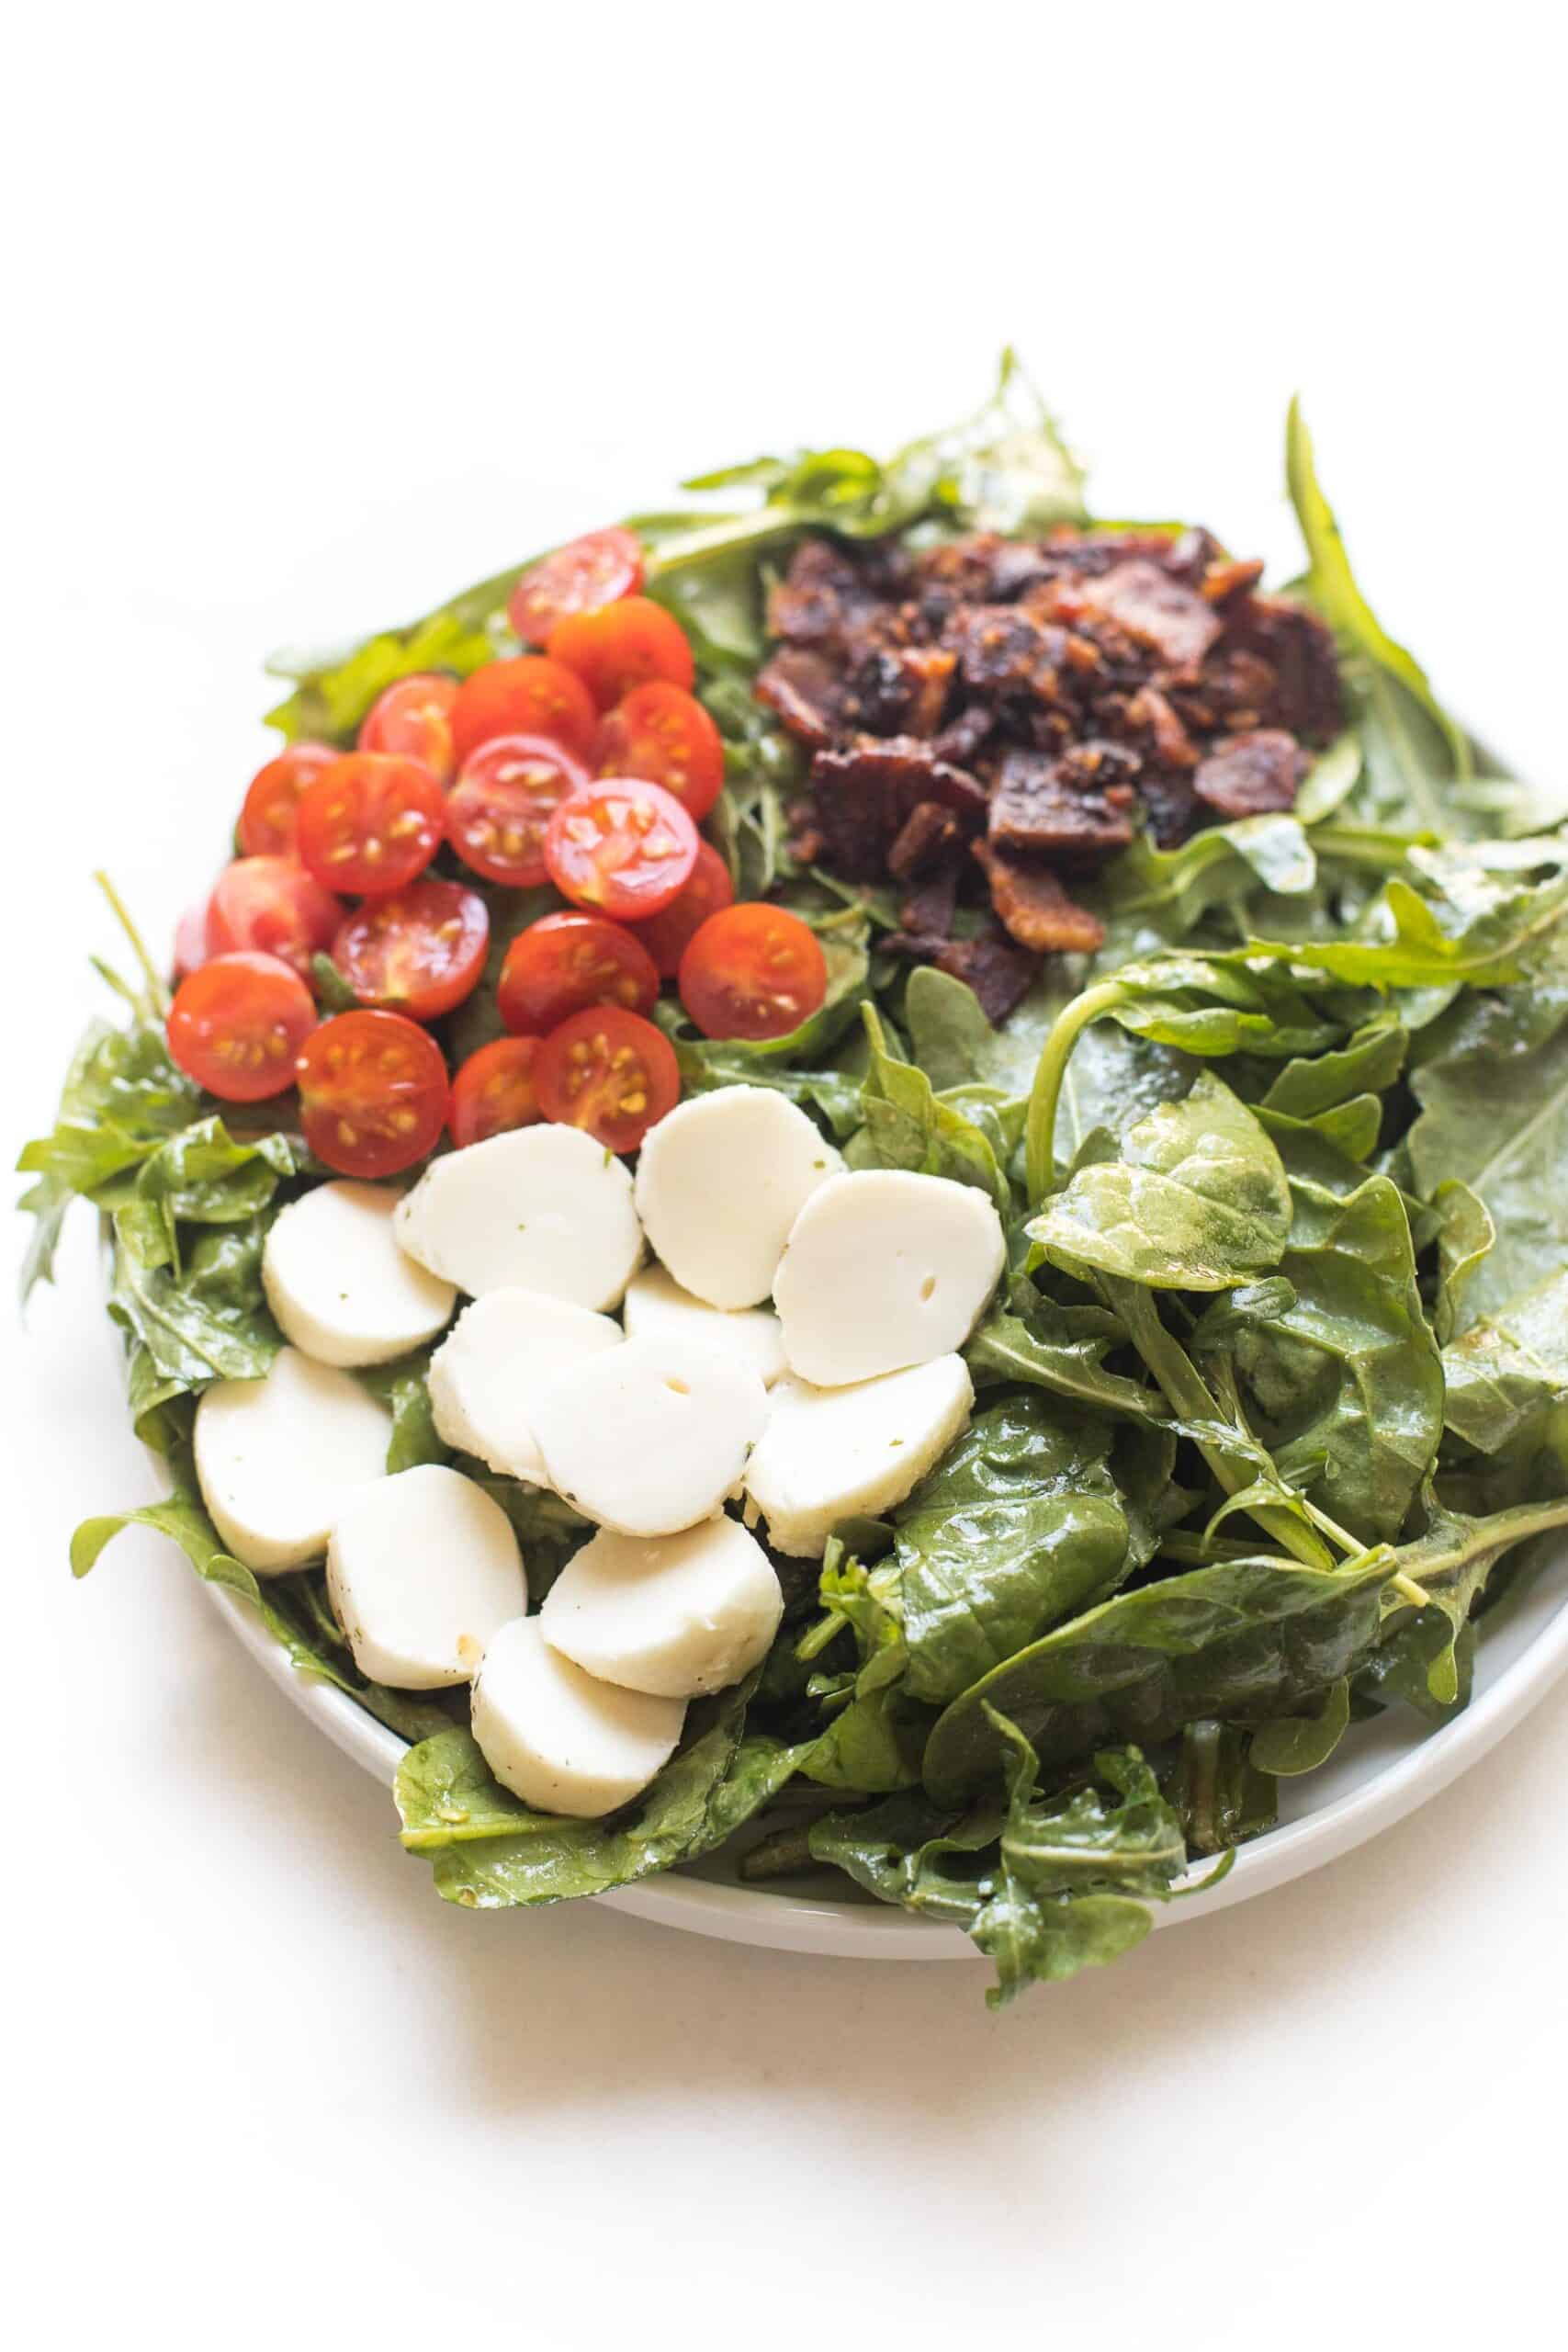 keto salad with bacon, tomatoes and mozzarella cheese on spinach and arugula on a white plate